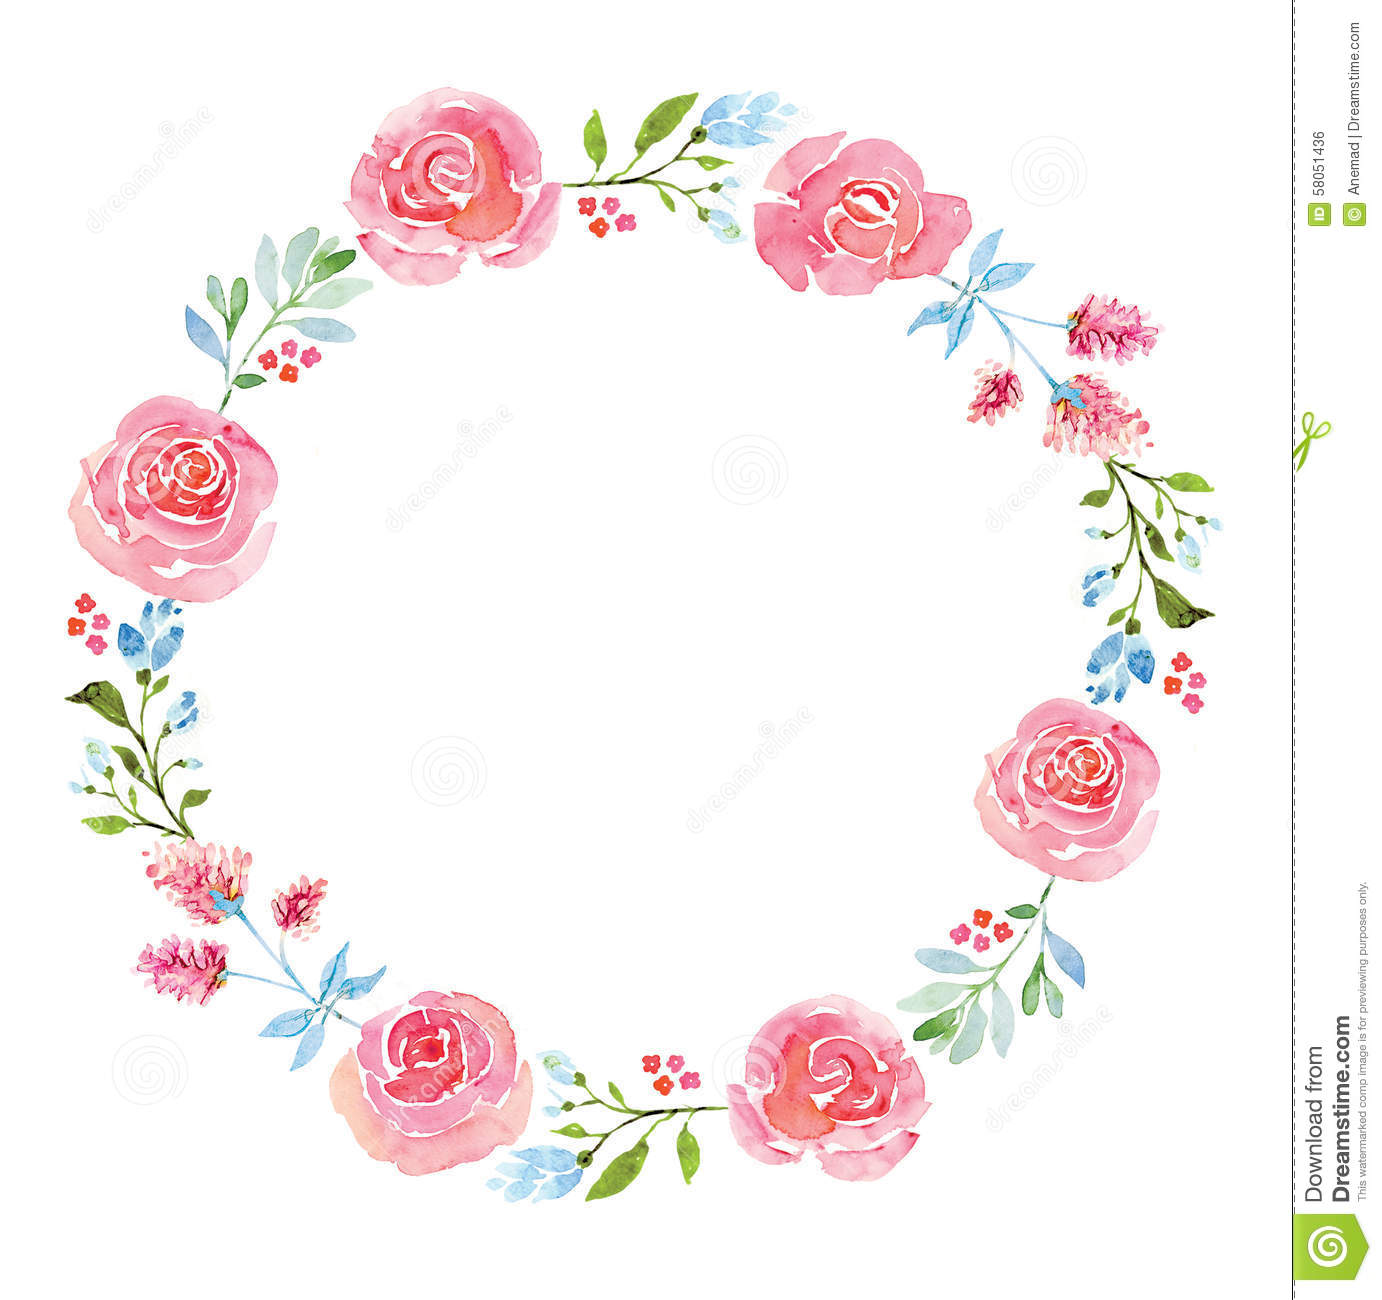 Circle clipart floral Image Image Beautiful  Stock